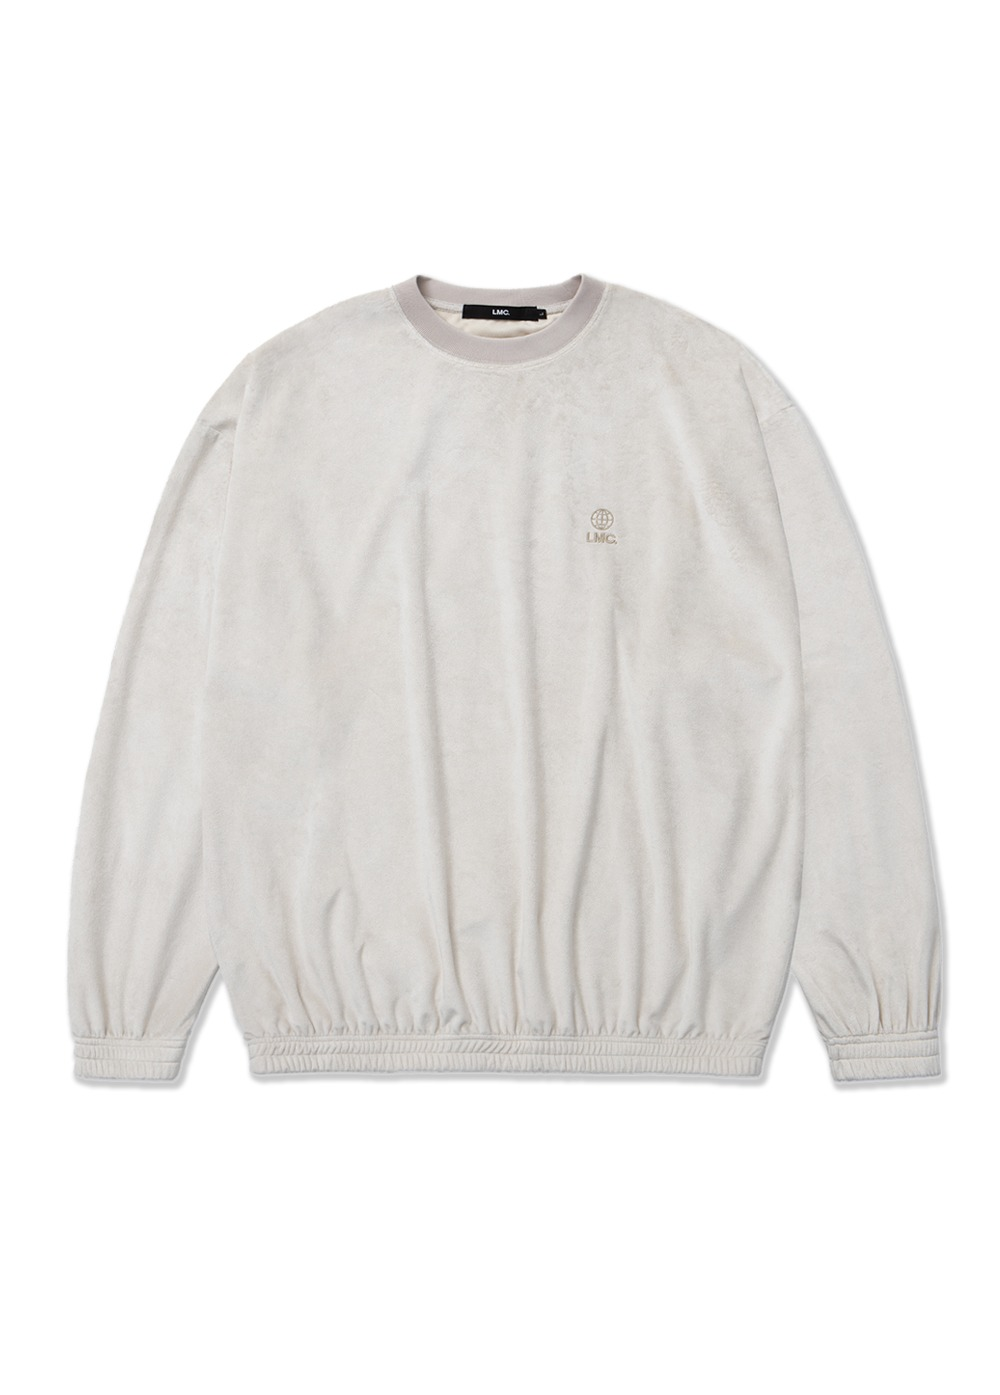 LMC VELOUR OVERSIZED SWEATSHIRT cream